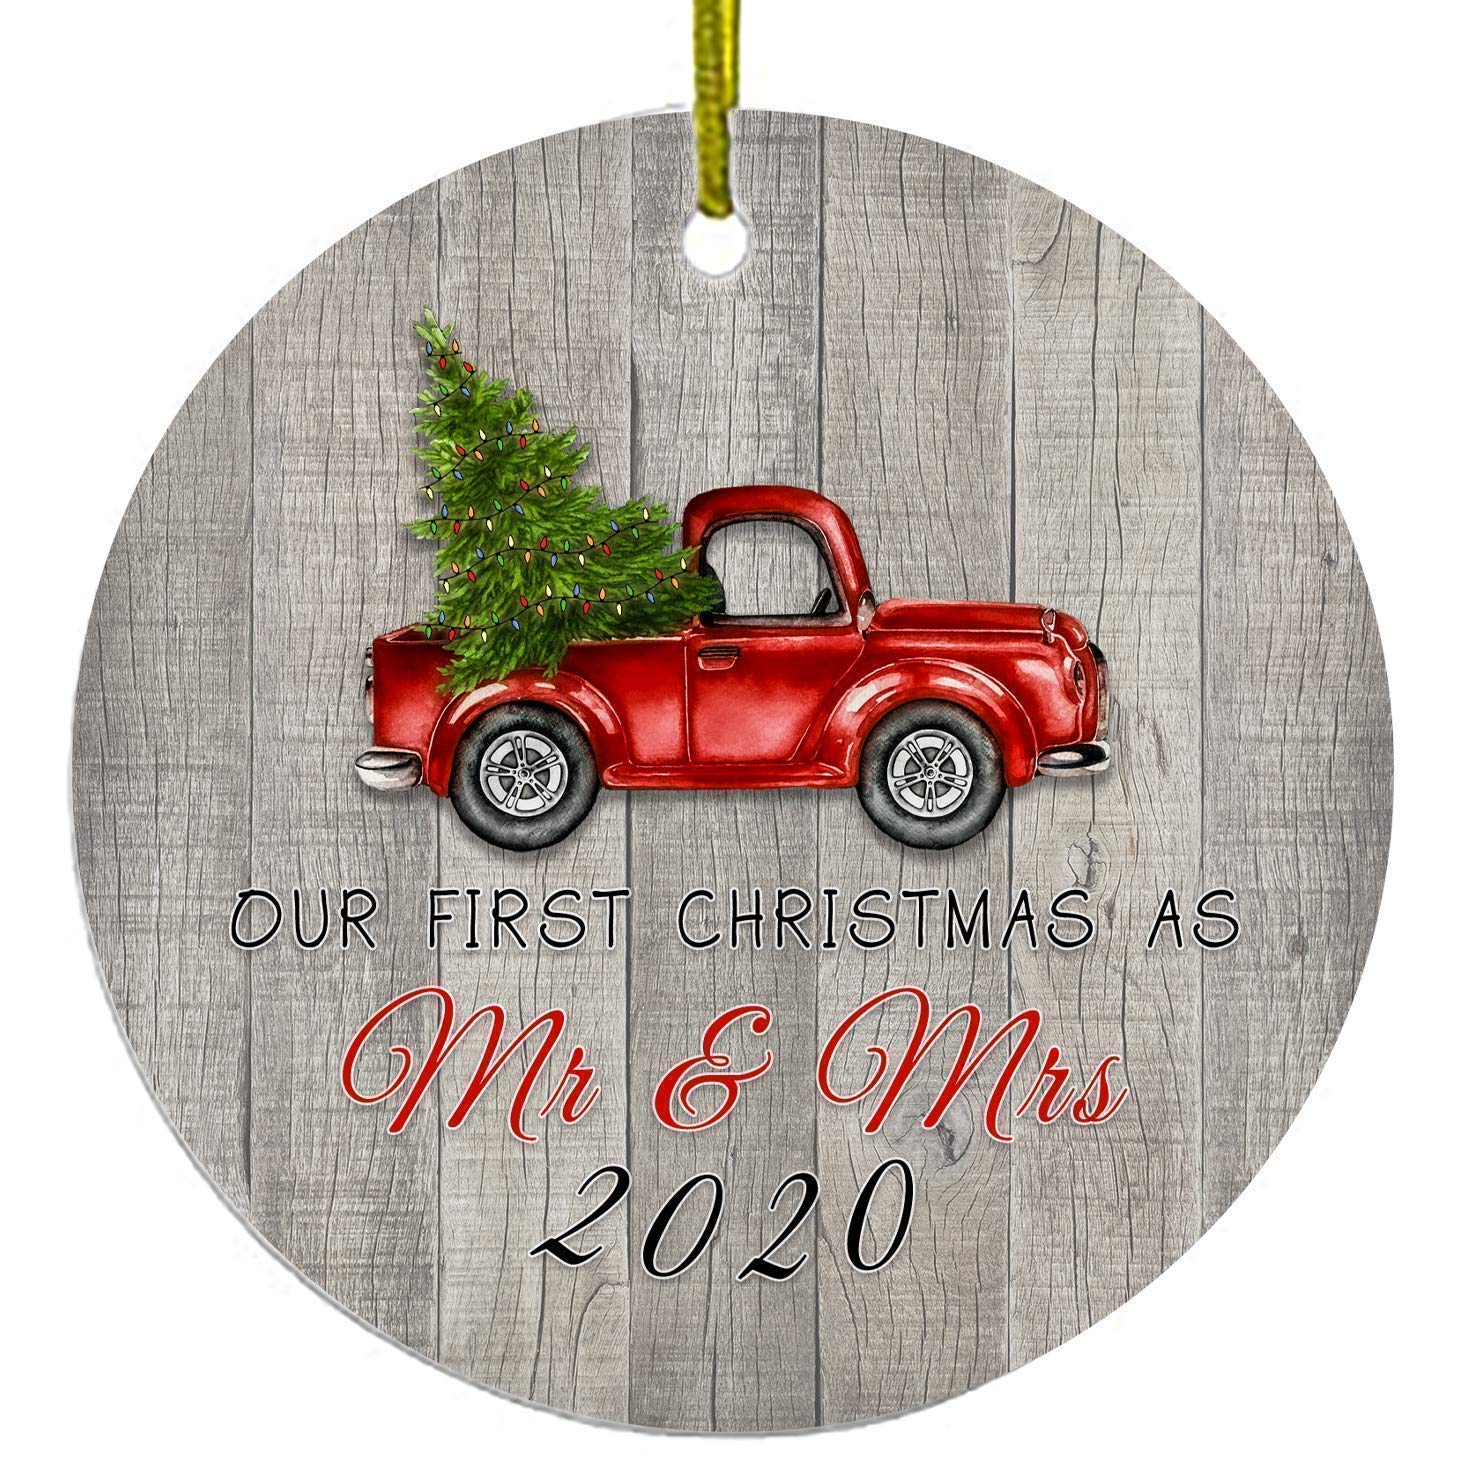 Christmas Ornaments | Our First Christmas As Mr And Mrs | Rustic Ornament With Red Truck And Green Tree 2020 First XMAS Ornament | Cute Gift Wedding Presents For Newlywed | Ceramic Holiday Decoration…